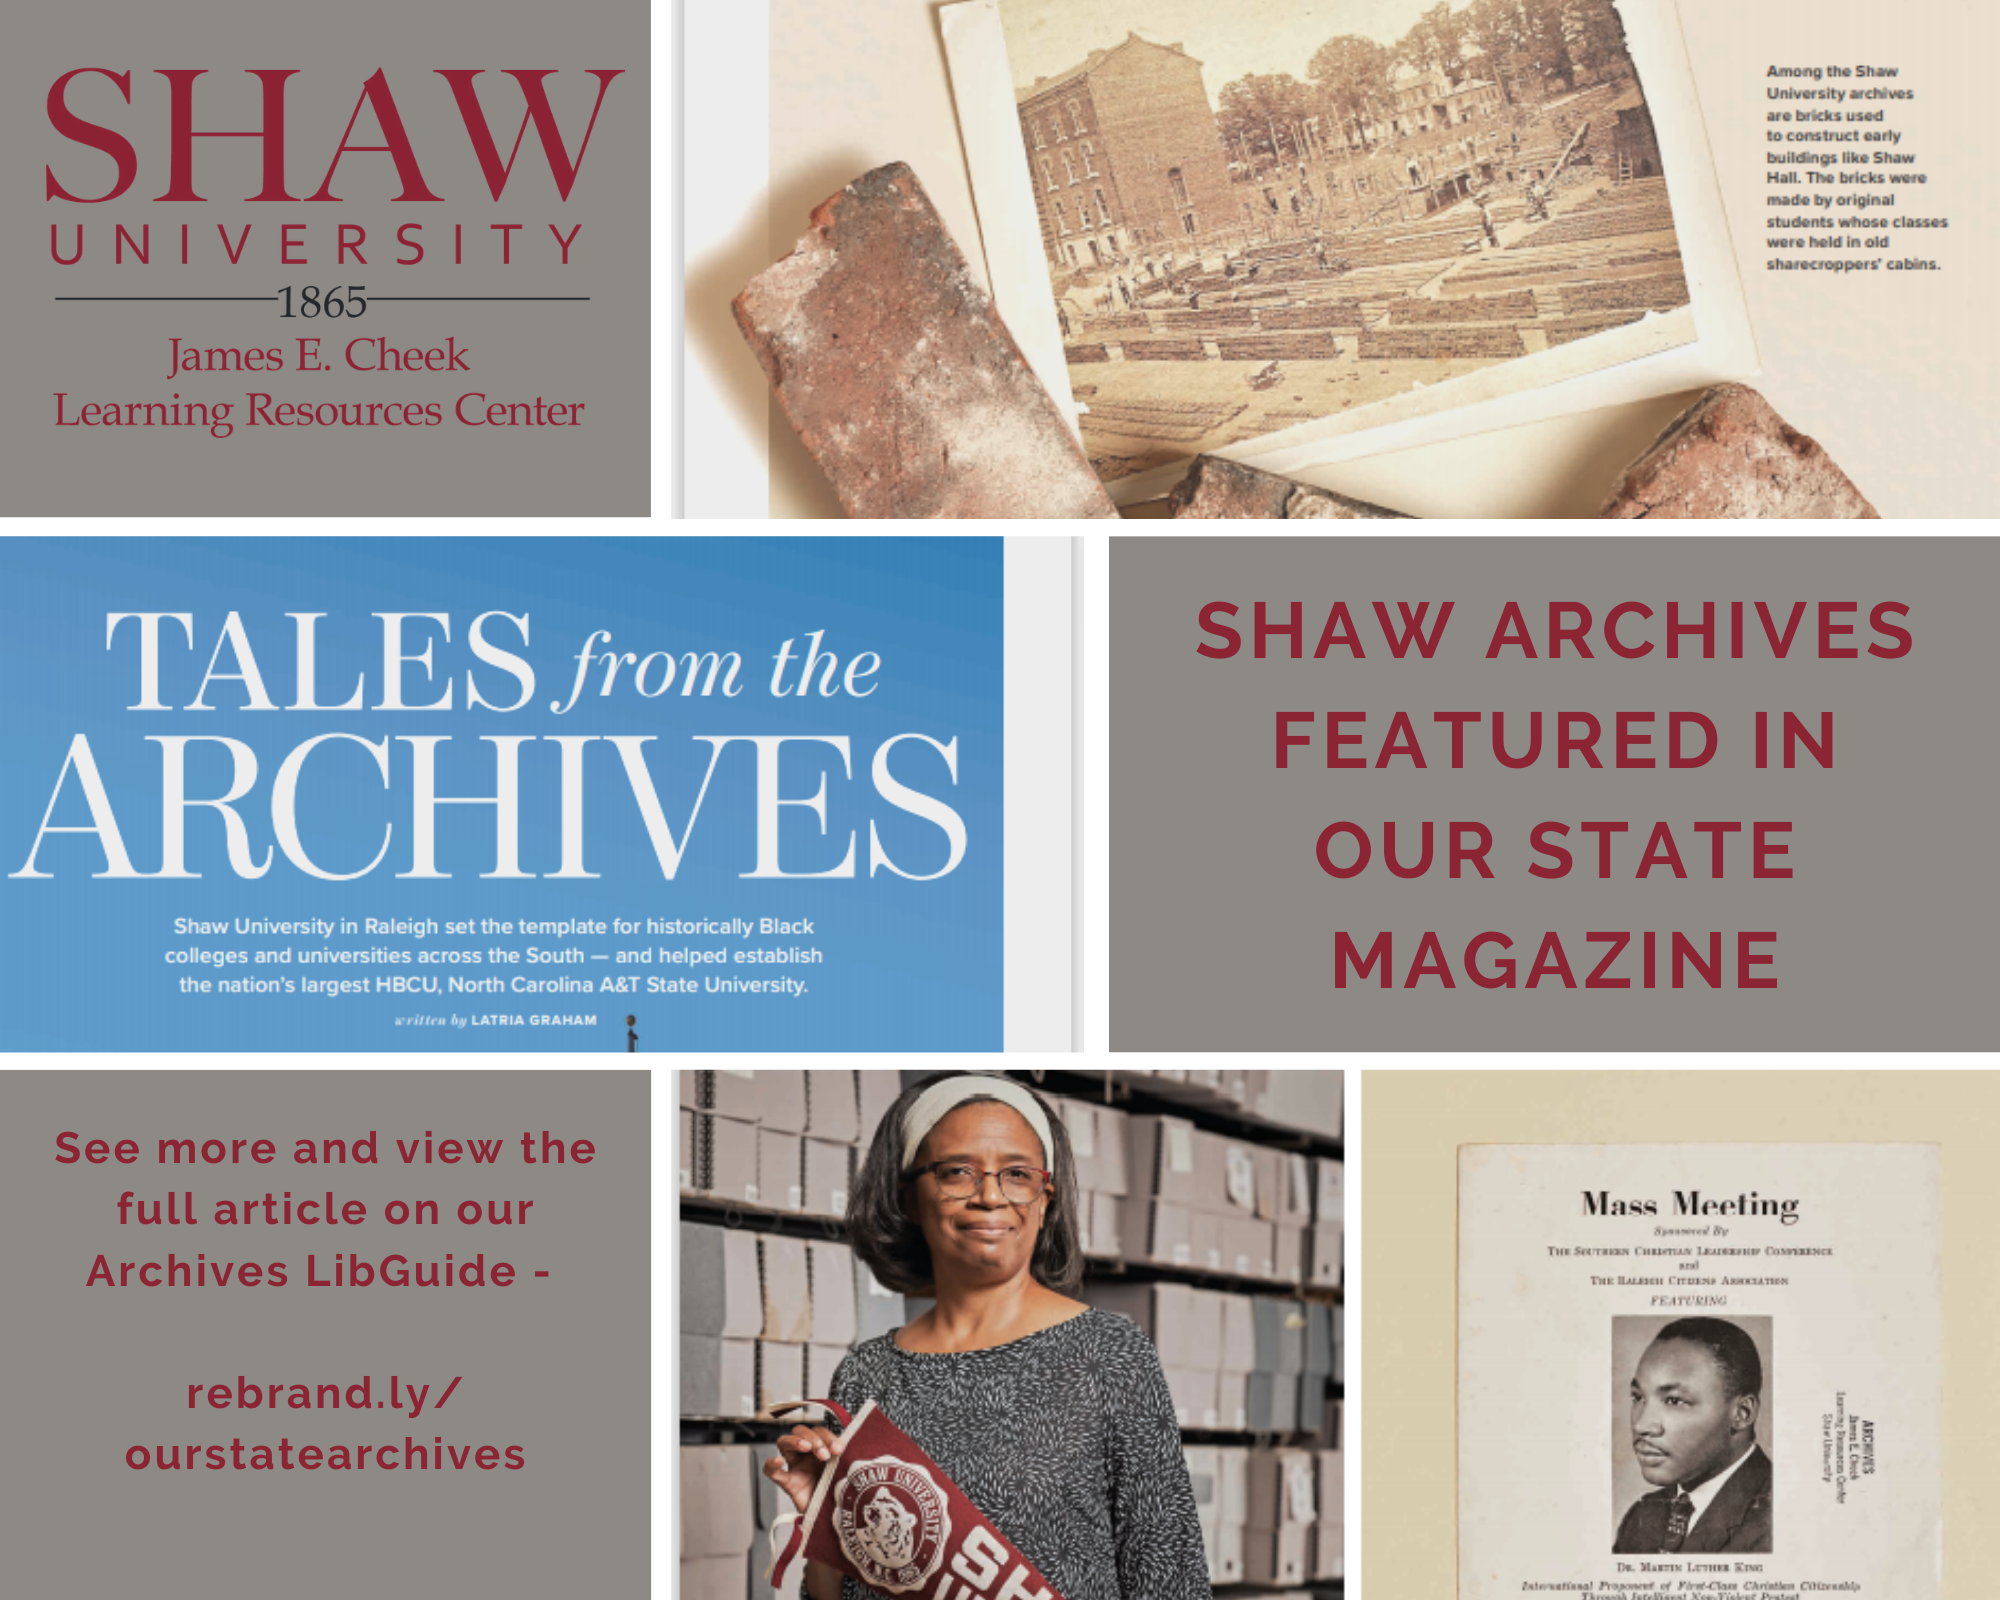 Promotional flyer for Our State Magazine, featuring woman with shaw banner standing in front of  archive boxes, and old medicine bottles in front of various texts